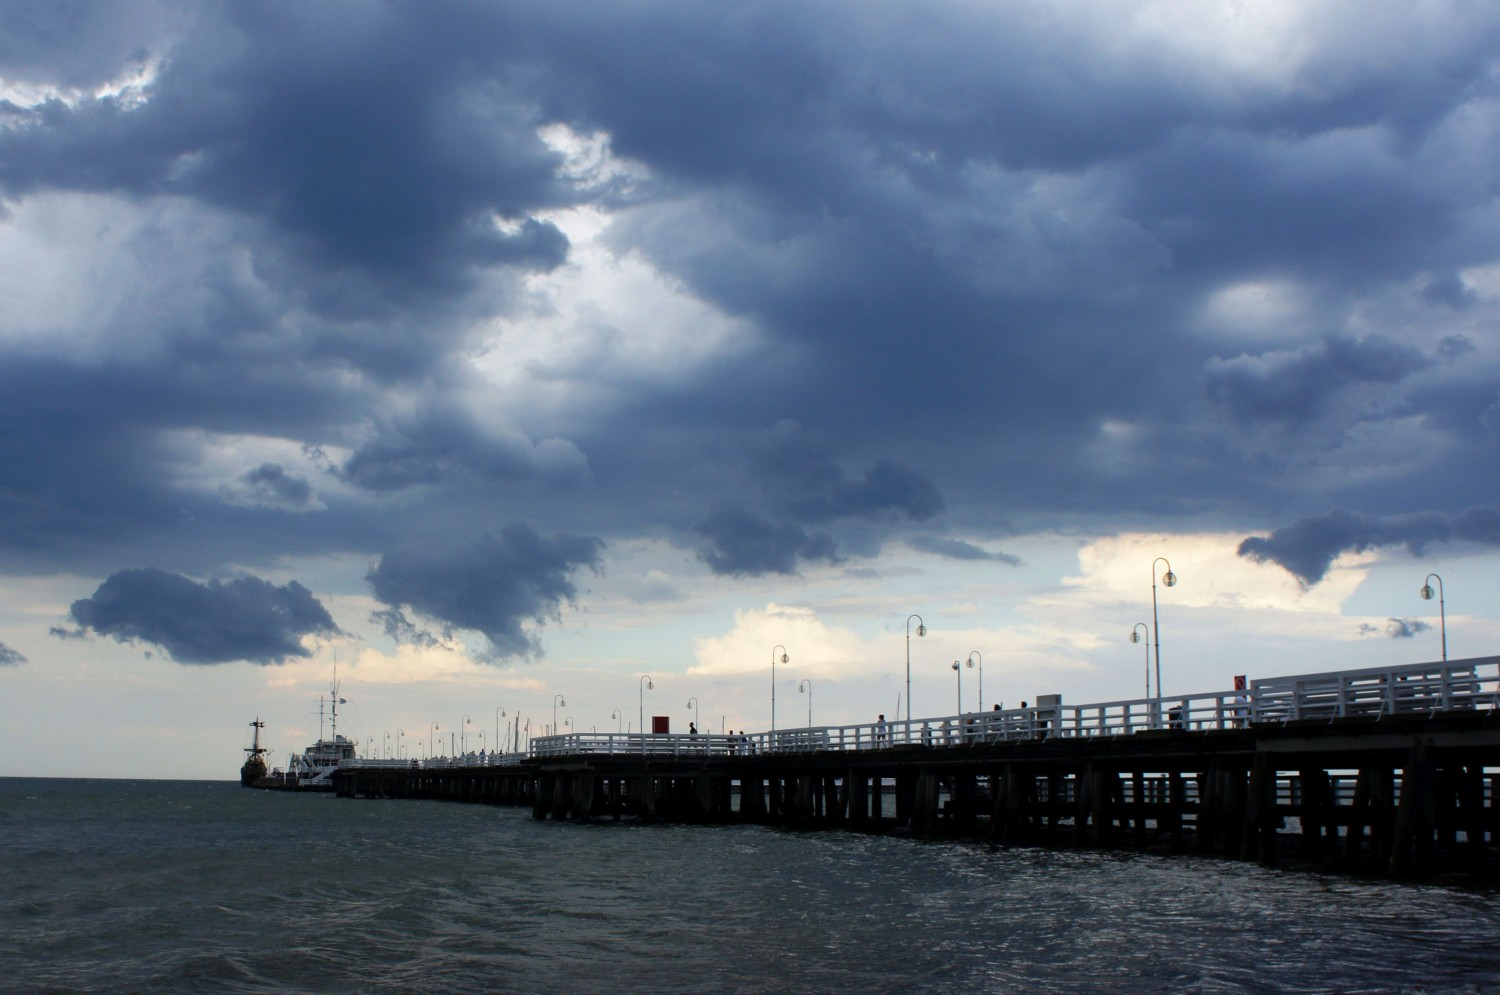 IT'S NOT ALL BLUE SKIES AS A REMOTE WORKER. A STORM ROLLS IN AT THE POLISH SEASIDE RESORT OF SOPOT